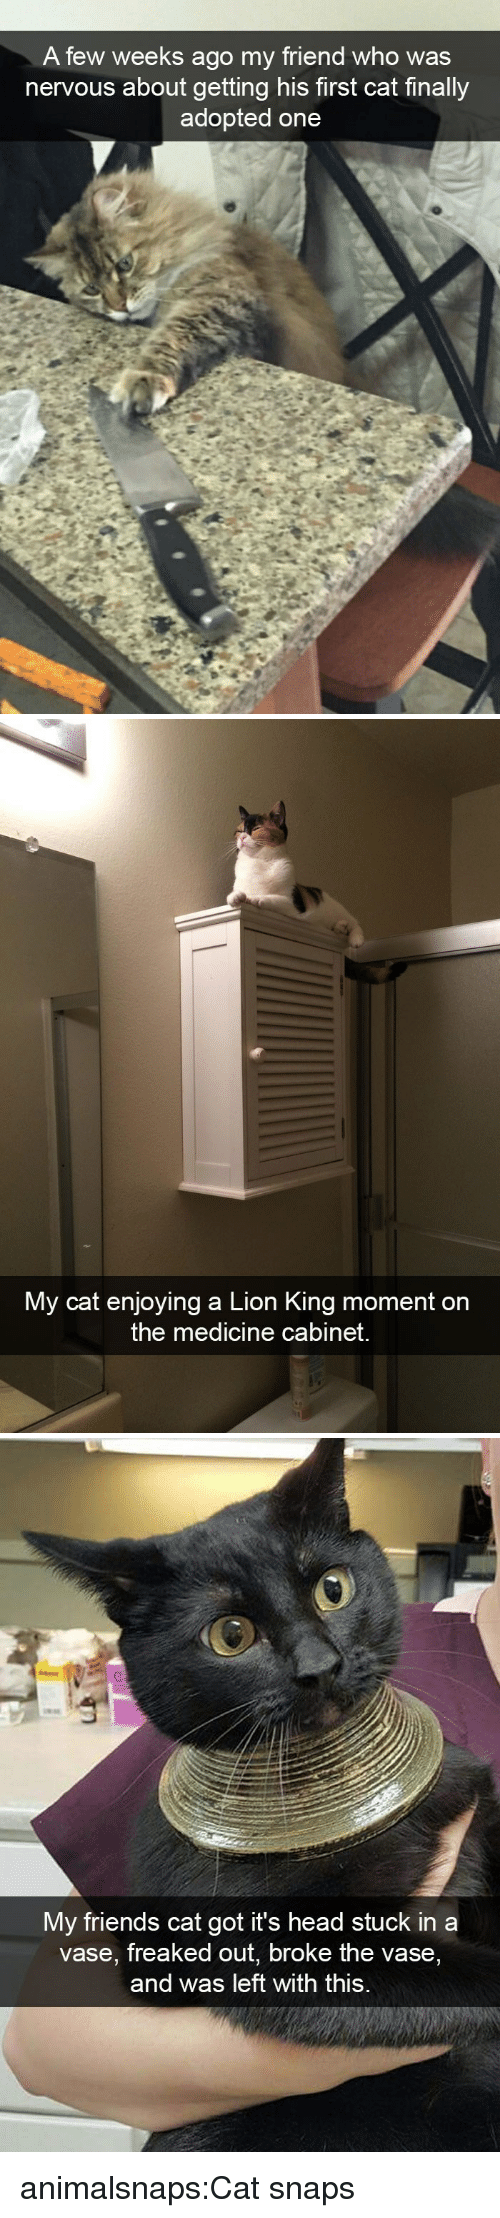 Friends, Head, and Target: A few weeks ago my friend who was  nervous about getting his first cat finally  adopted one   My cat enjoying a Lion King moment on  the medicine cabinet.   My friends cat go  t it's head stuck in a  vase, freaked out, broke the vase  and was left with this. animalsnaps:Cat snaps